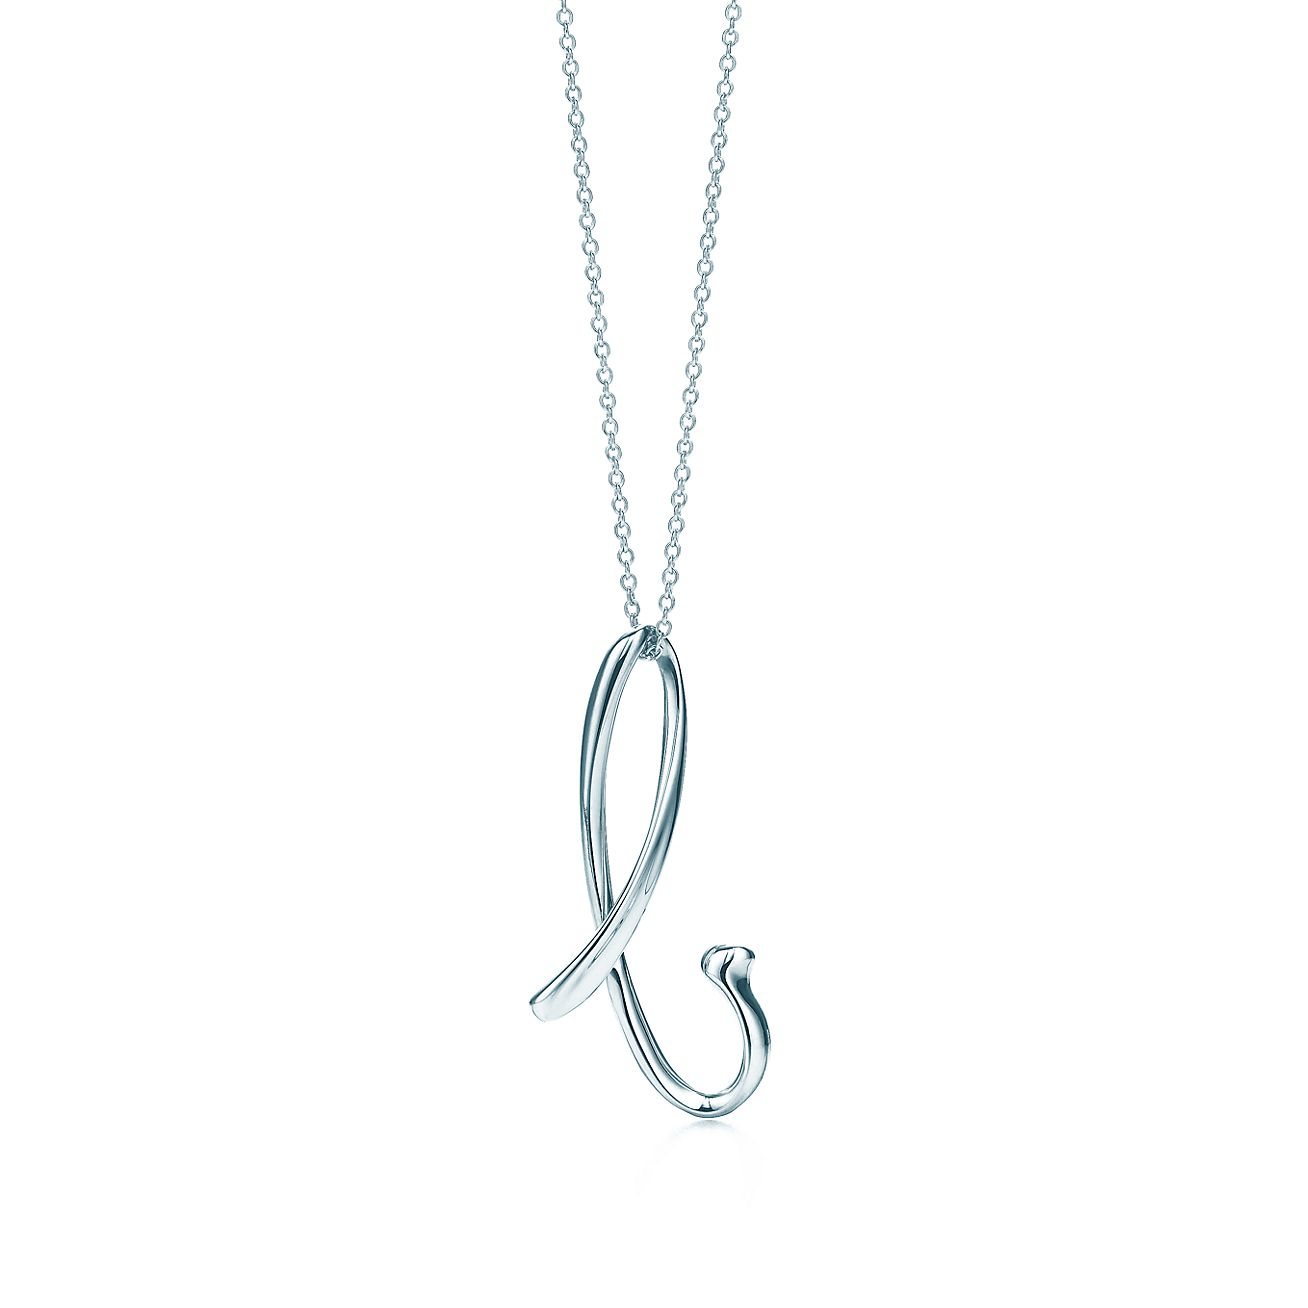 Elsa Peretti letter B pendant in sterling silver, small - Size B Tiffany & Co.